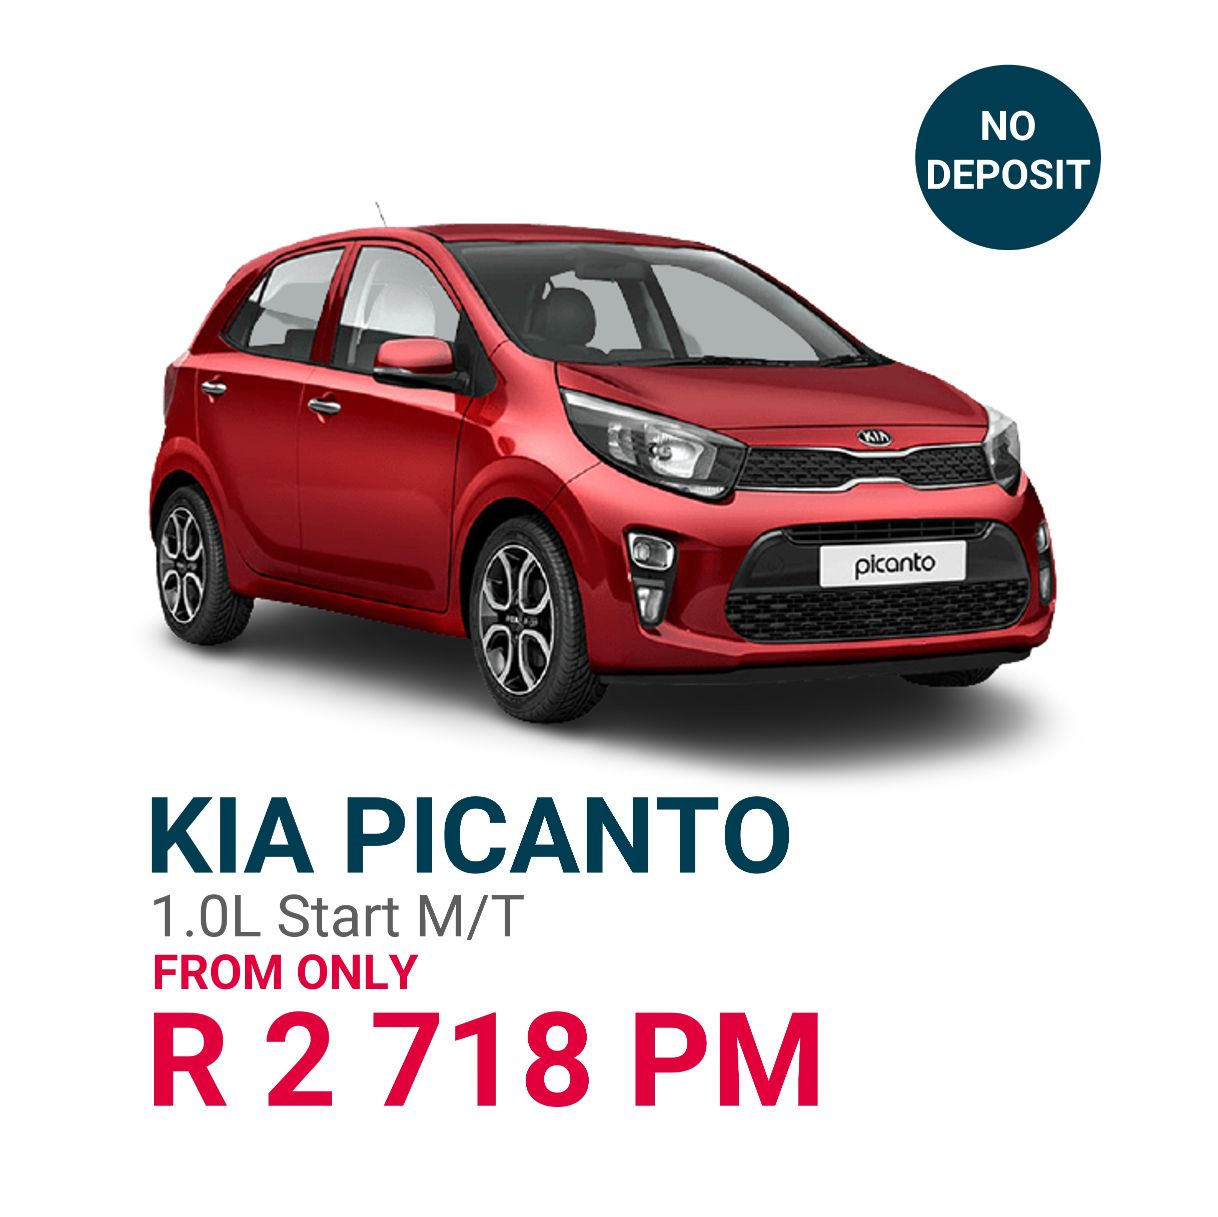 kia-picanto-start-from-only-r2-718pm